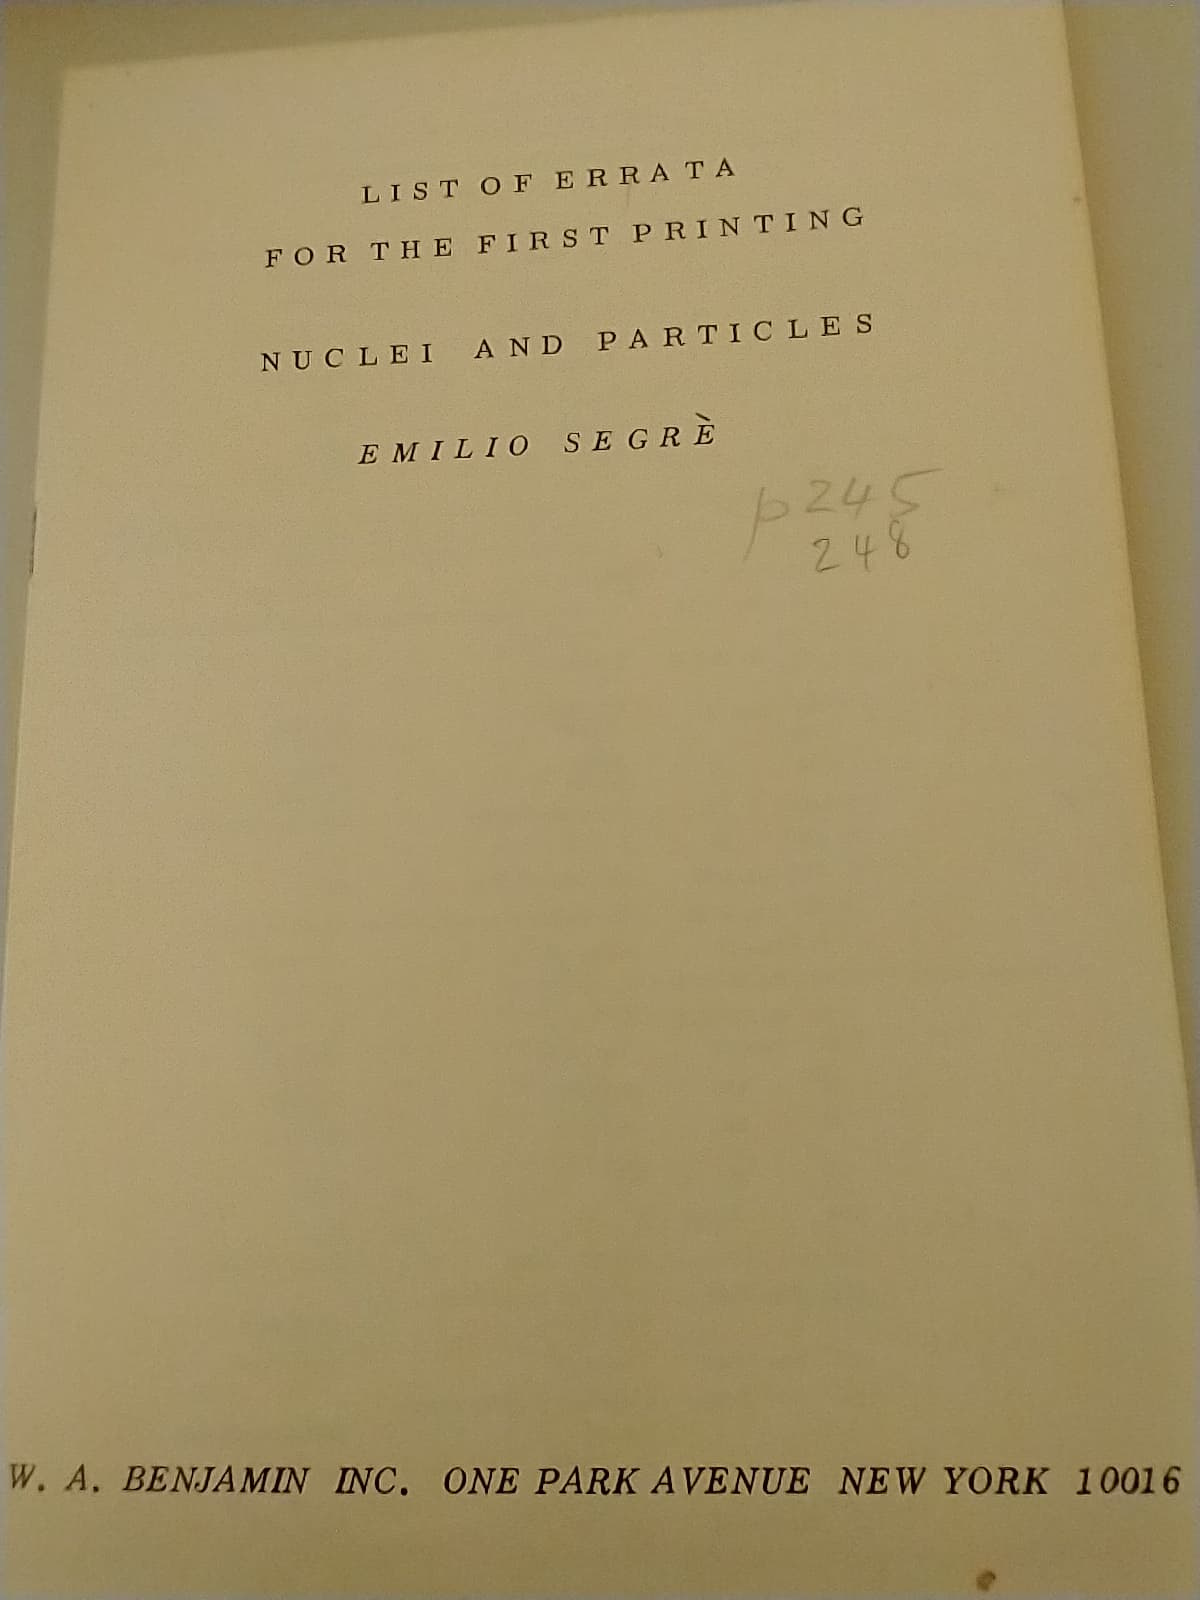 List of Errata for the First Printing title page with Emilio Segre corrected to Emilio Segrè